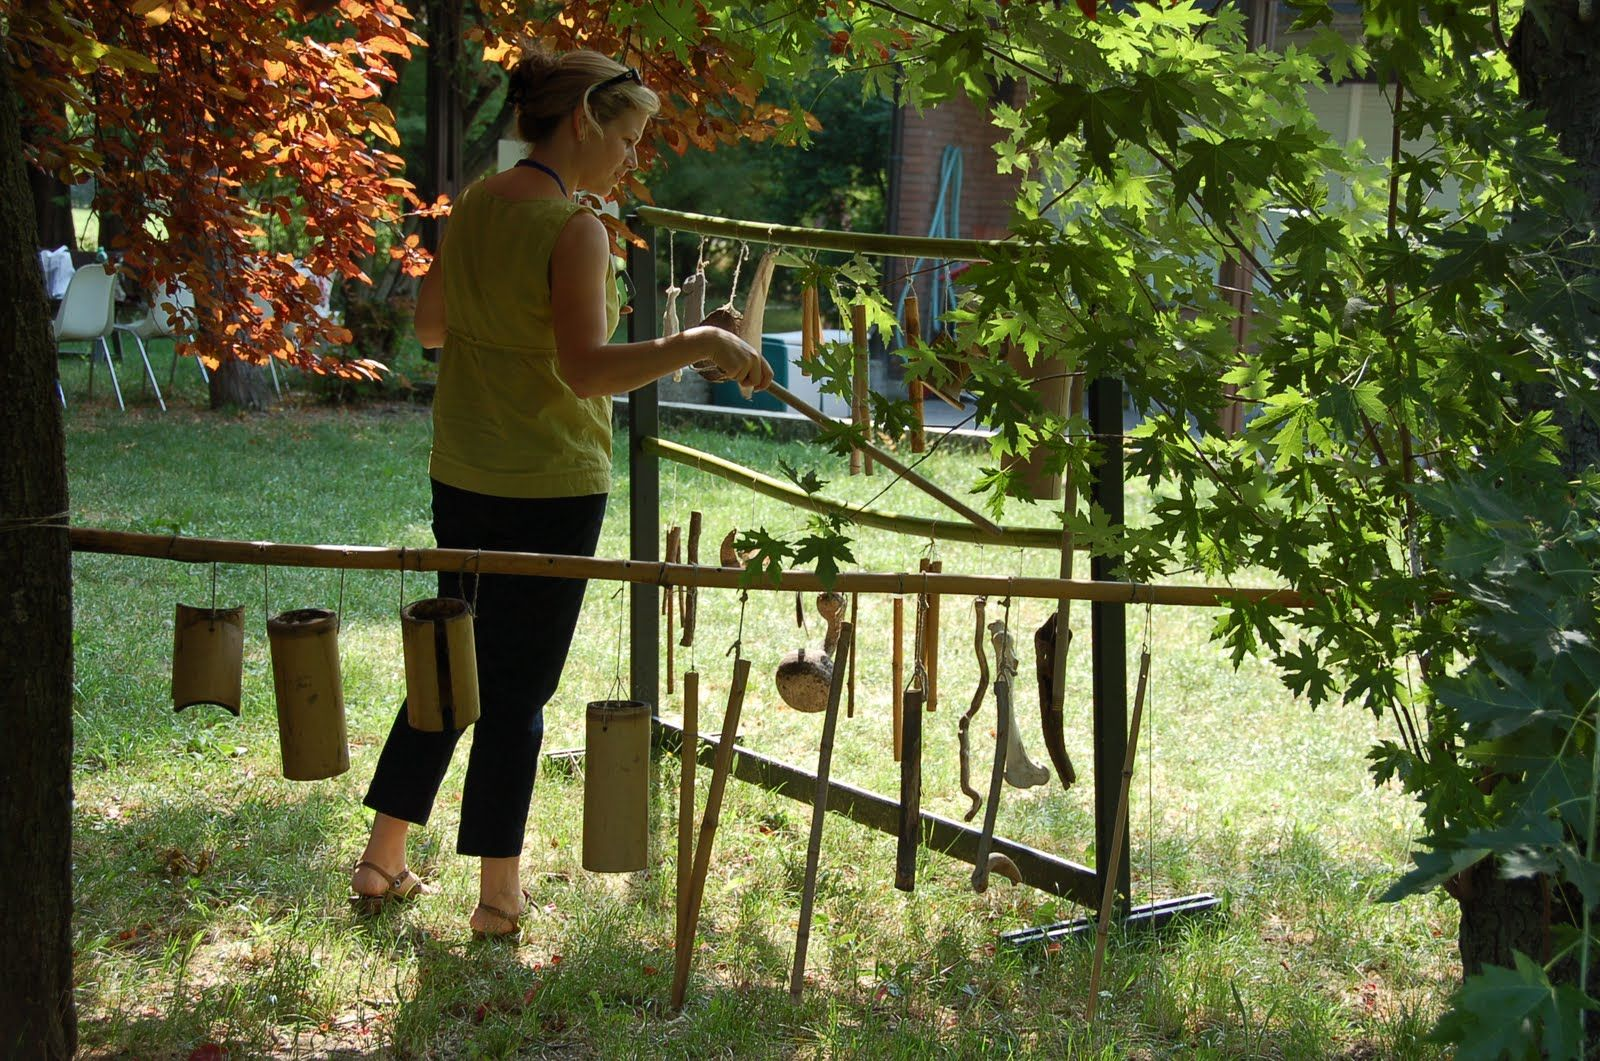 Preschools and learning environments inspired by the Reggio Emilia ...